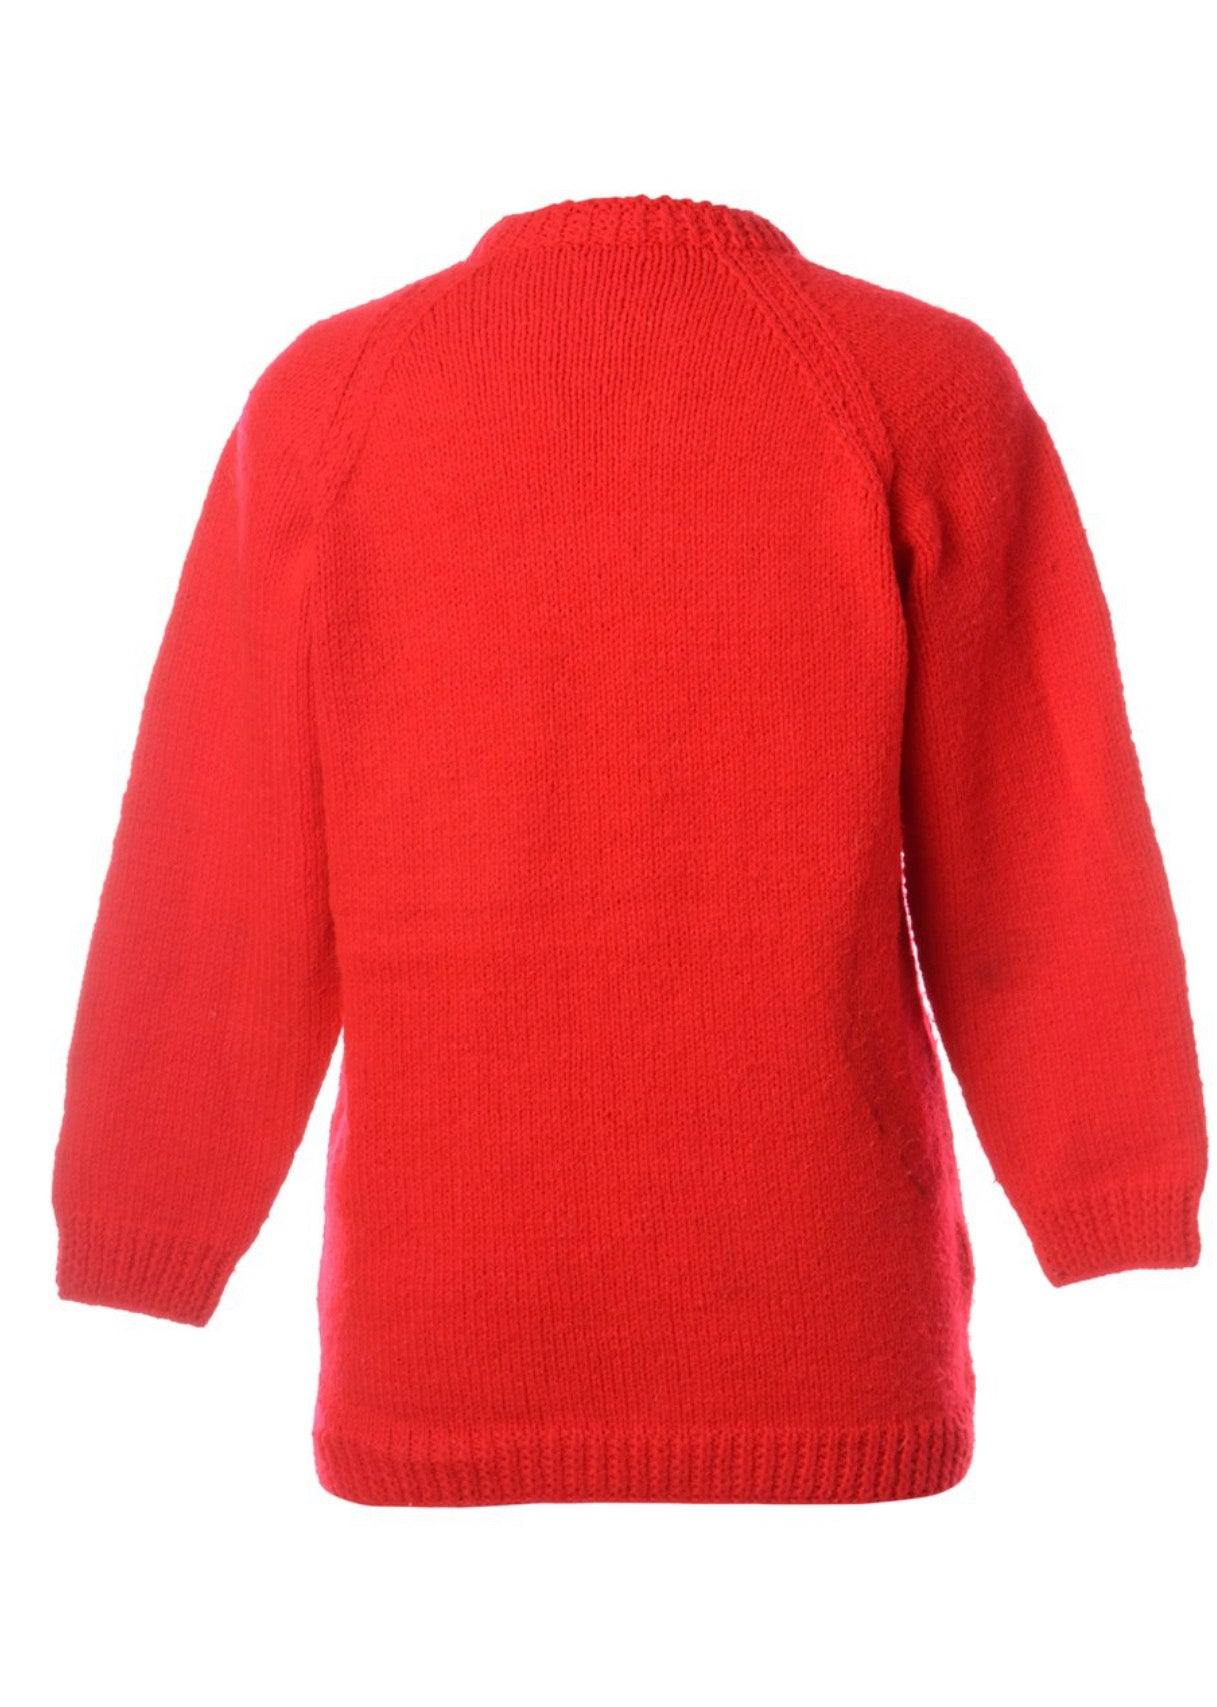 The Panda Red Knit